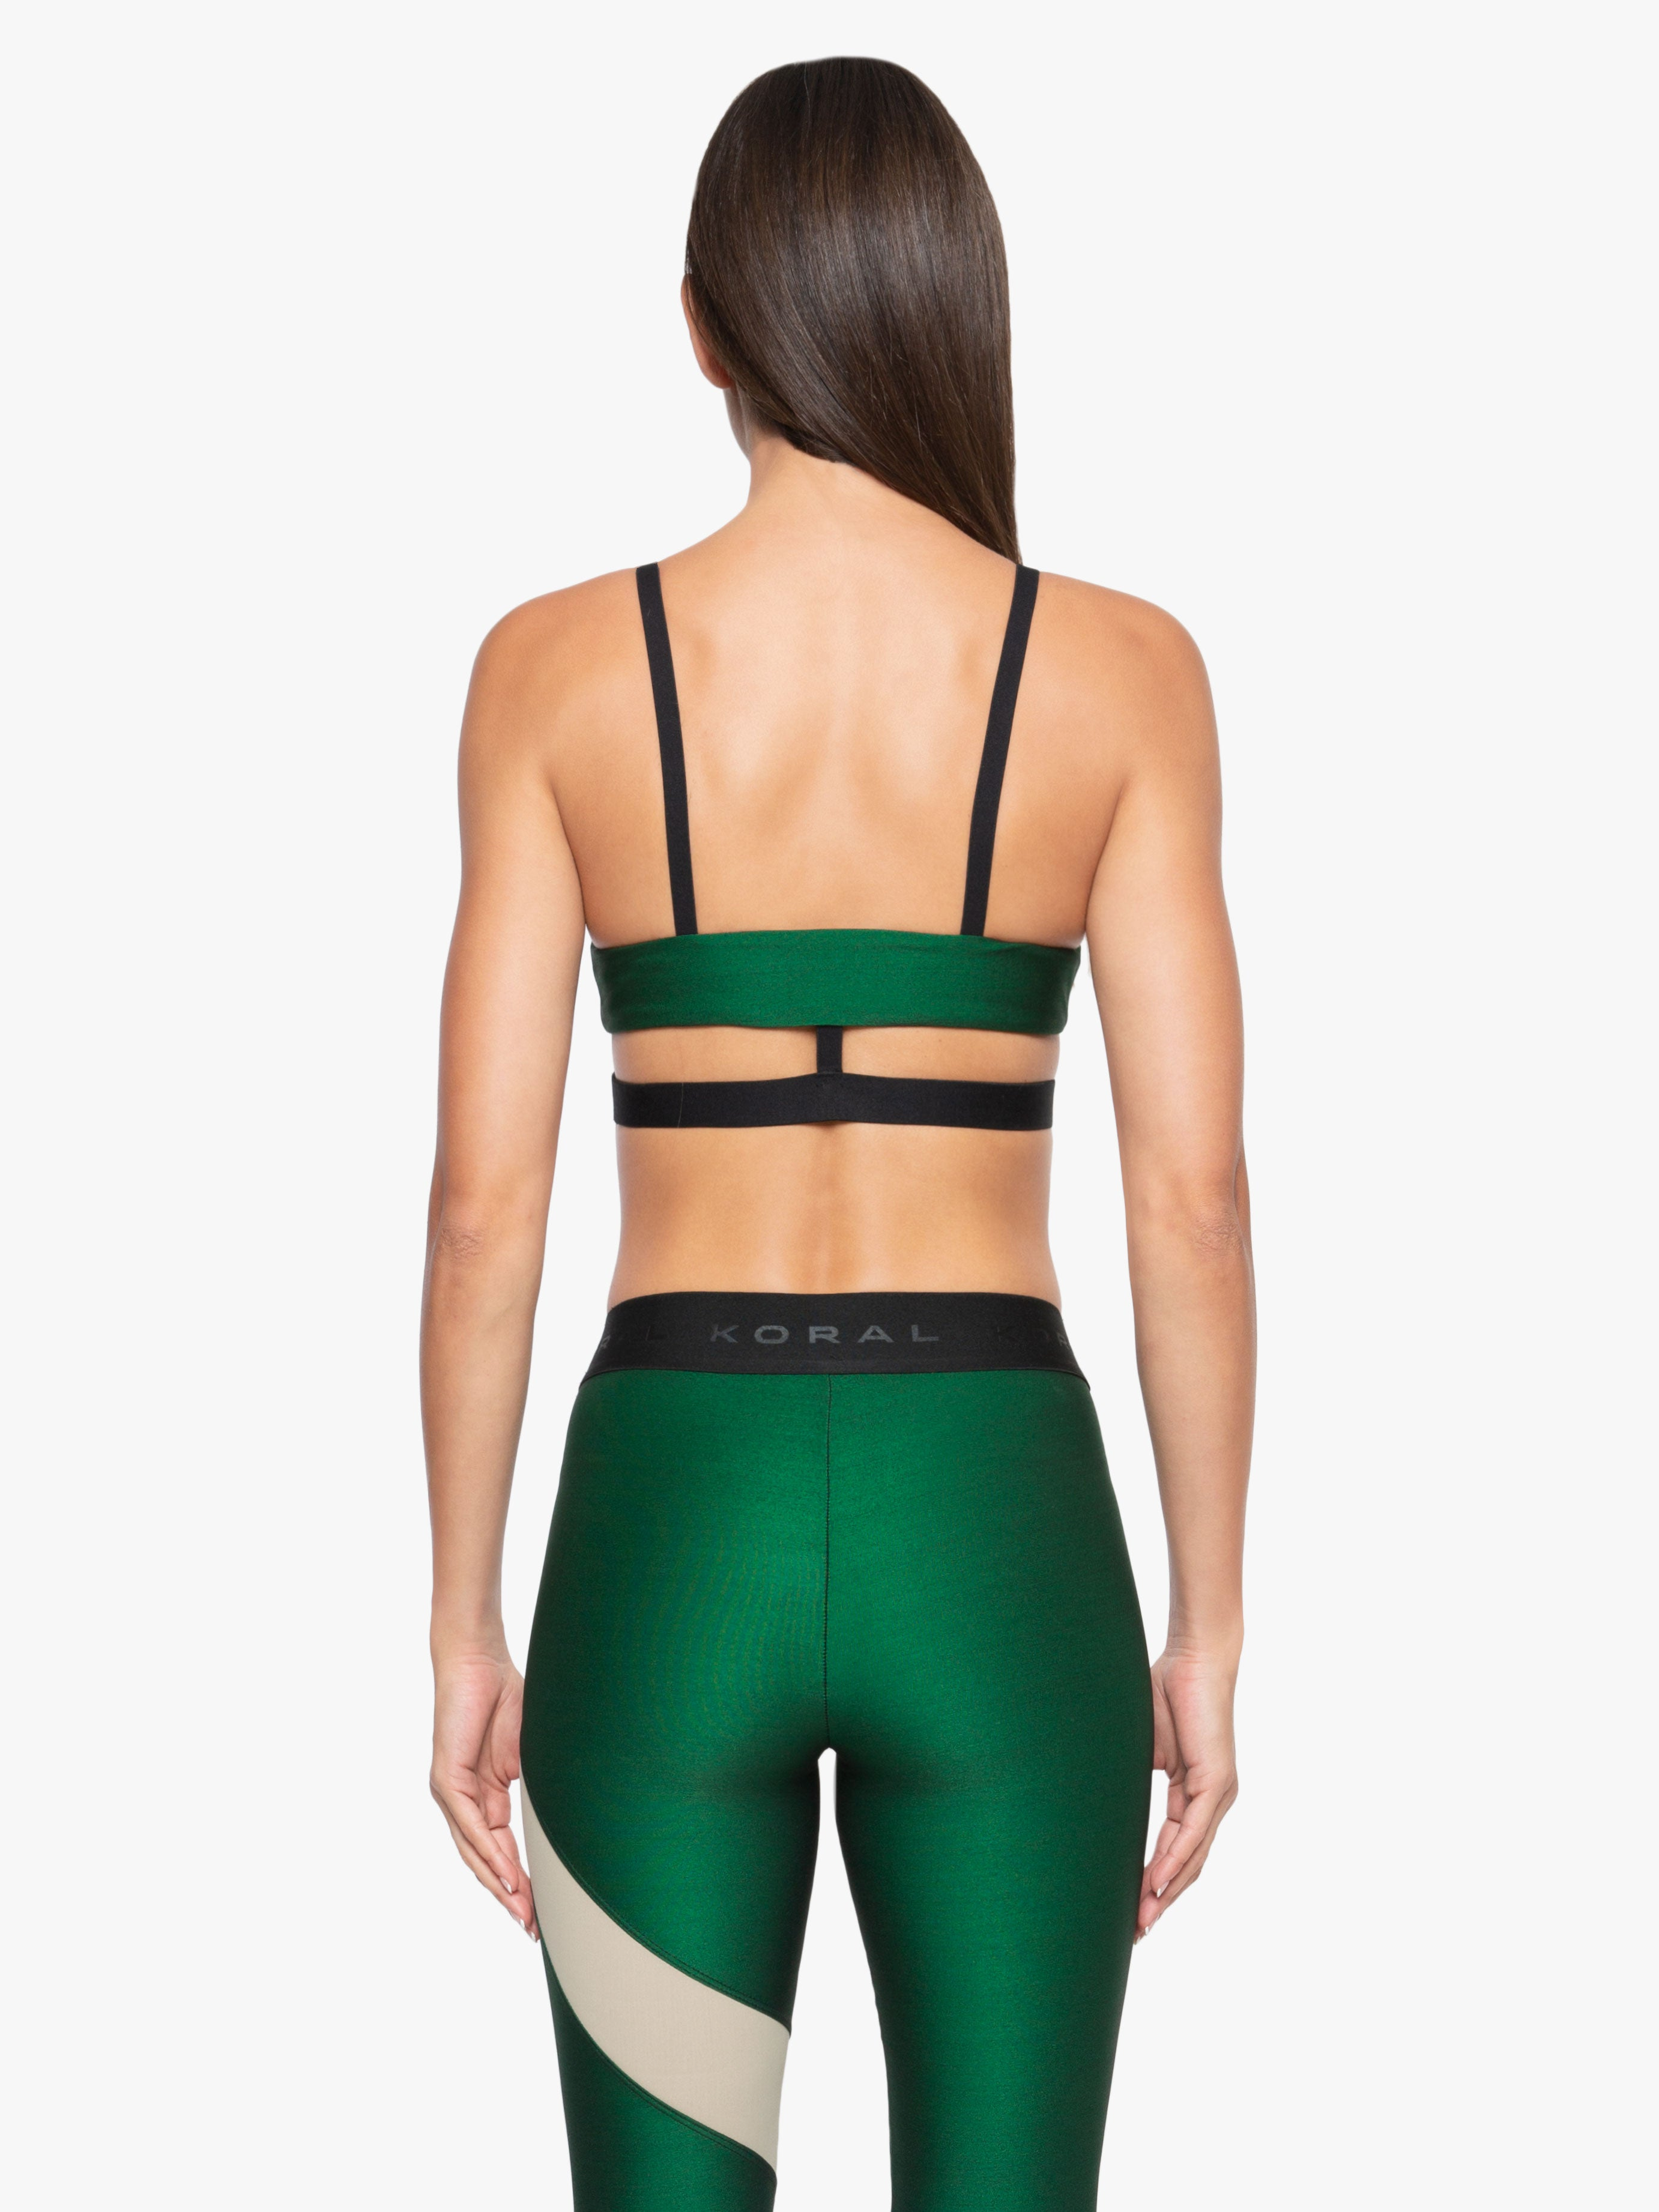 Limerence Shantung Sports Bra - Dark Green/Black/Caqui